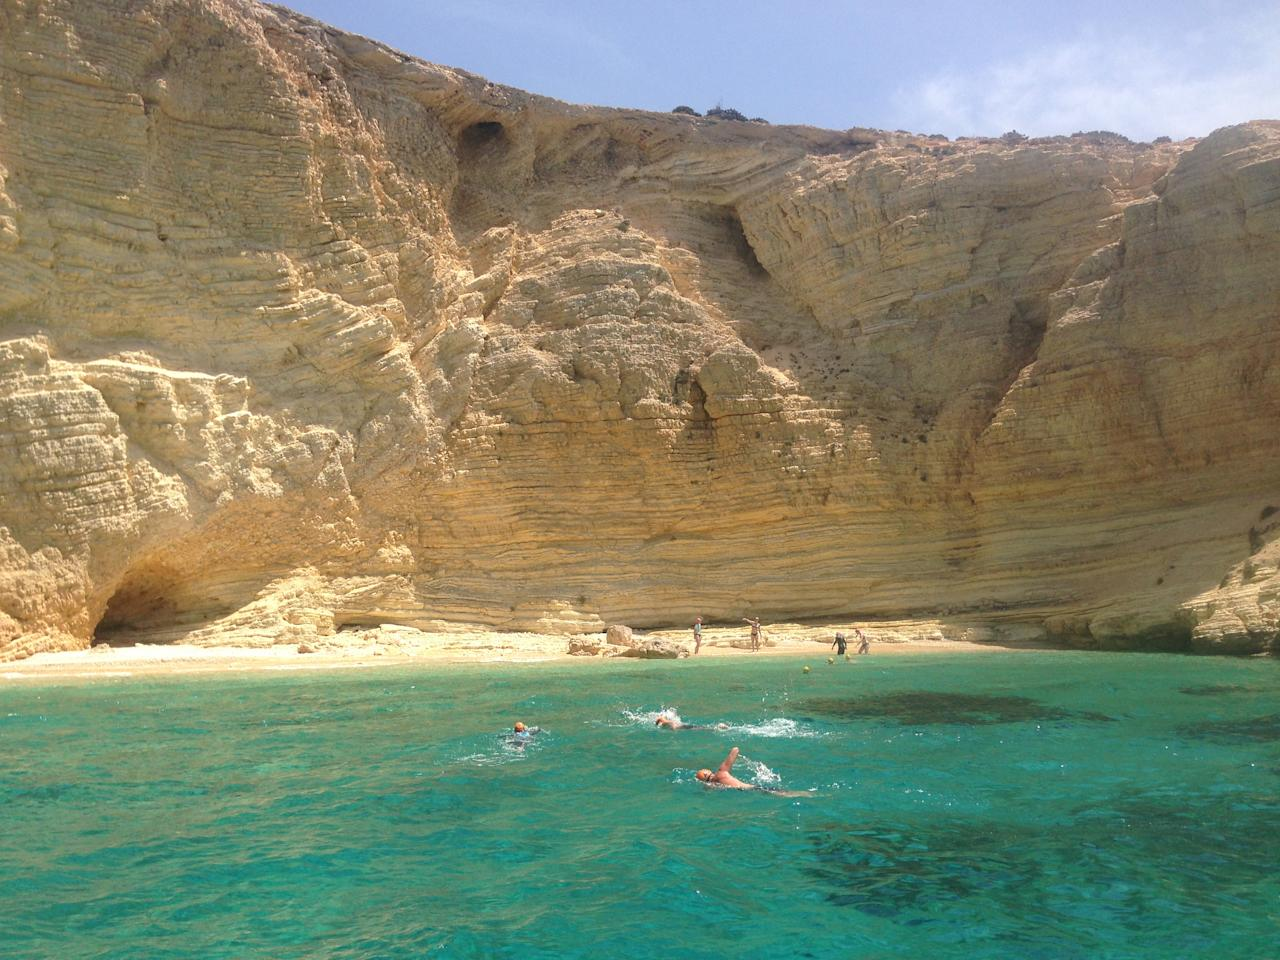 "<p>Dive into an island-hopping trip – where you swim between different isles. <a rel=""nofollow"" href=""https://www.swimtrek.com/packages/swimming-holiday-greek-cyclades"">SwimTrek</a> offer open-water swimming holidays in some incredible locations, including the Greek Cyclades, where you'll criss-cross your way between five different islands, splashing through tunnels and caves. Sailing and exploring islands on foot are also part of the trip. Seven nights B&B including most meals, swimming coaching and guiding costs from £980, departing September 16. Excludes flights.<br /><i>[Photo: SwimTrek]</i> </p>"